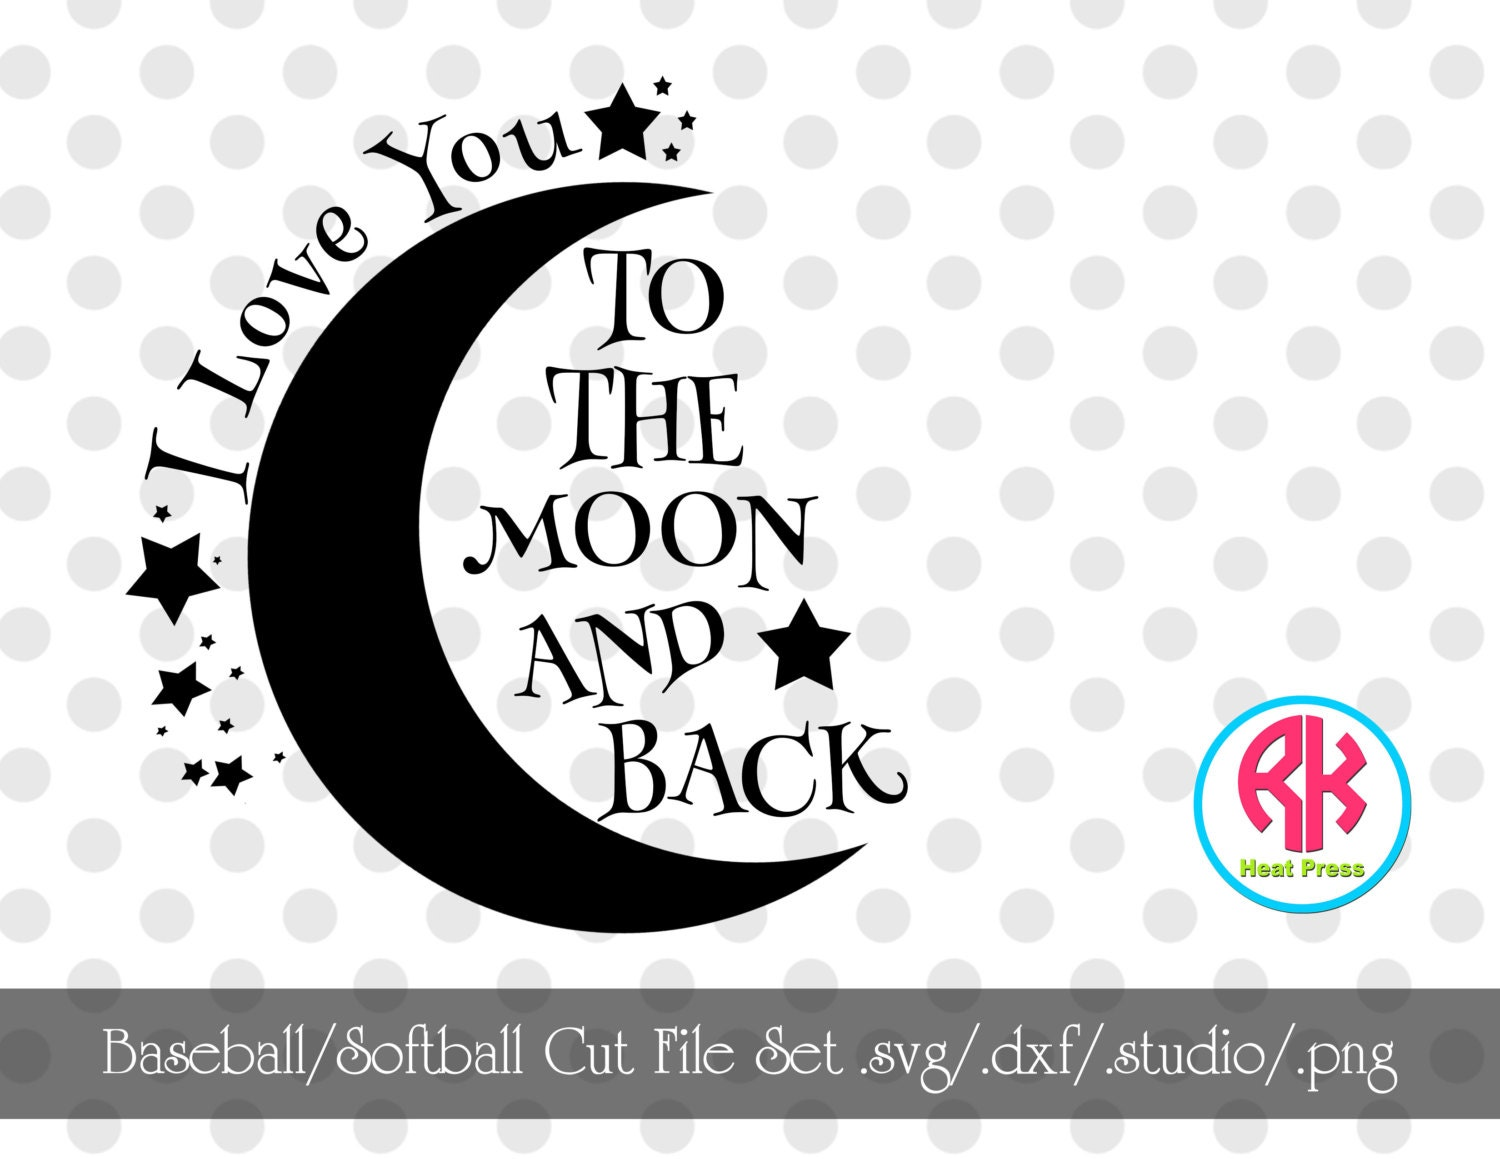 Download Love You To The Moon Cut File .PNG .DXF .SVG by RKHeatPress